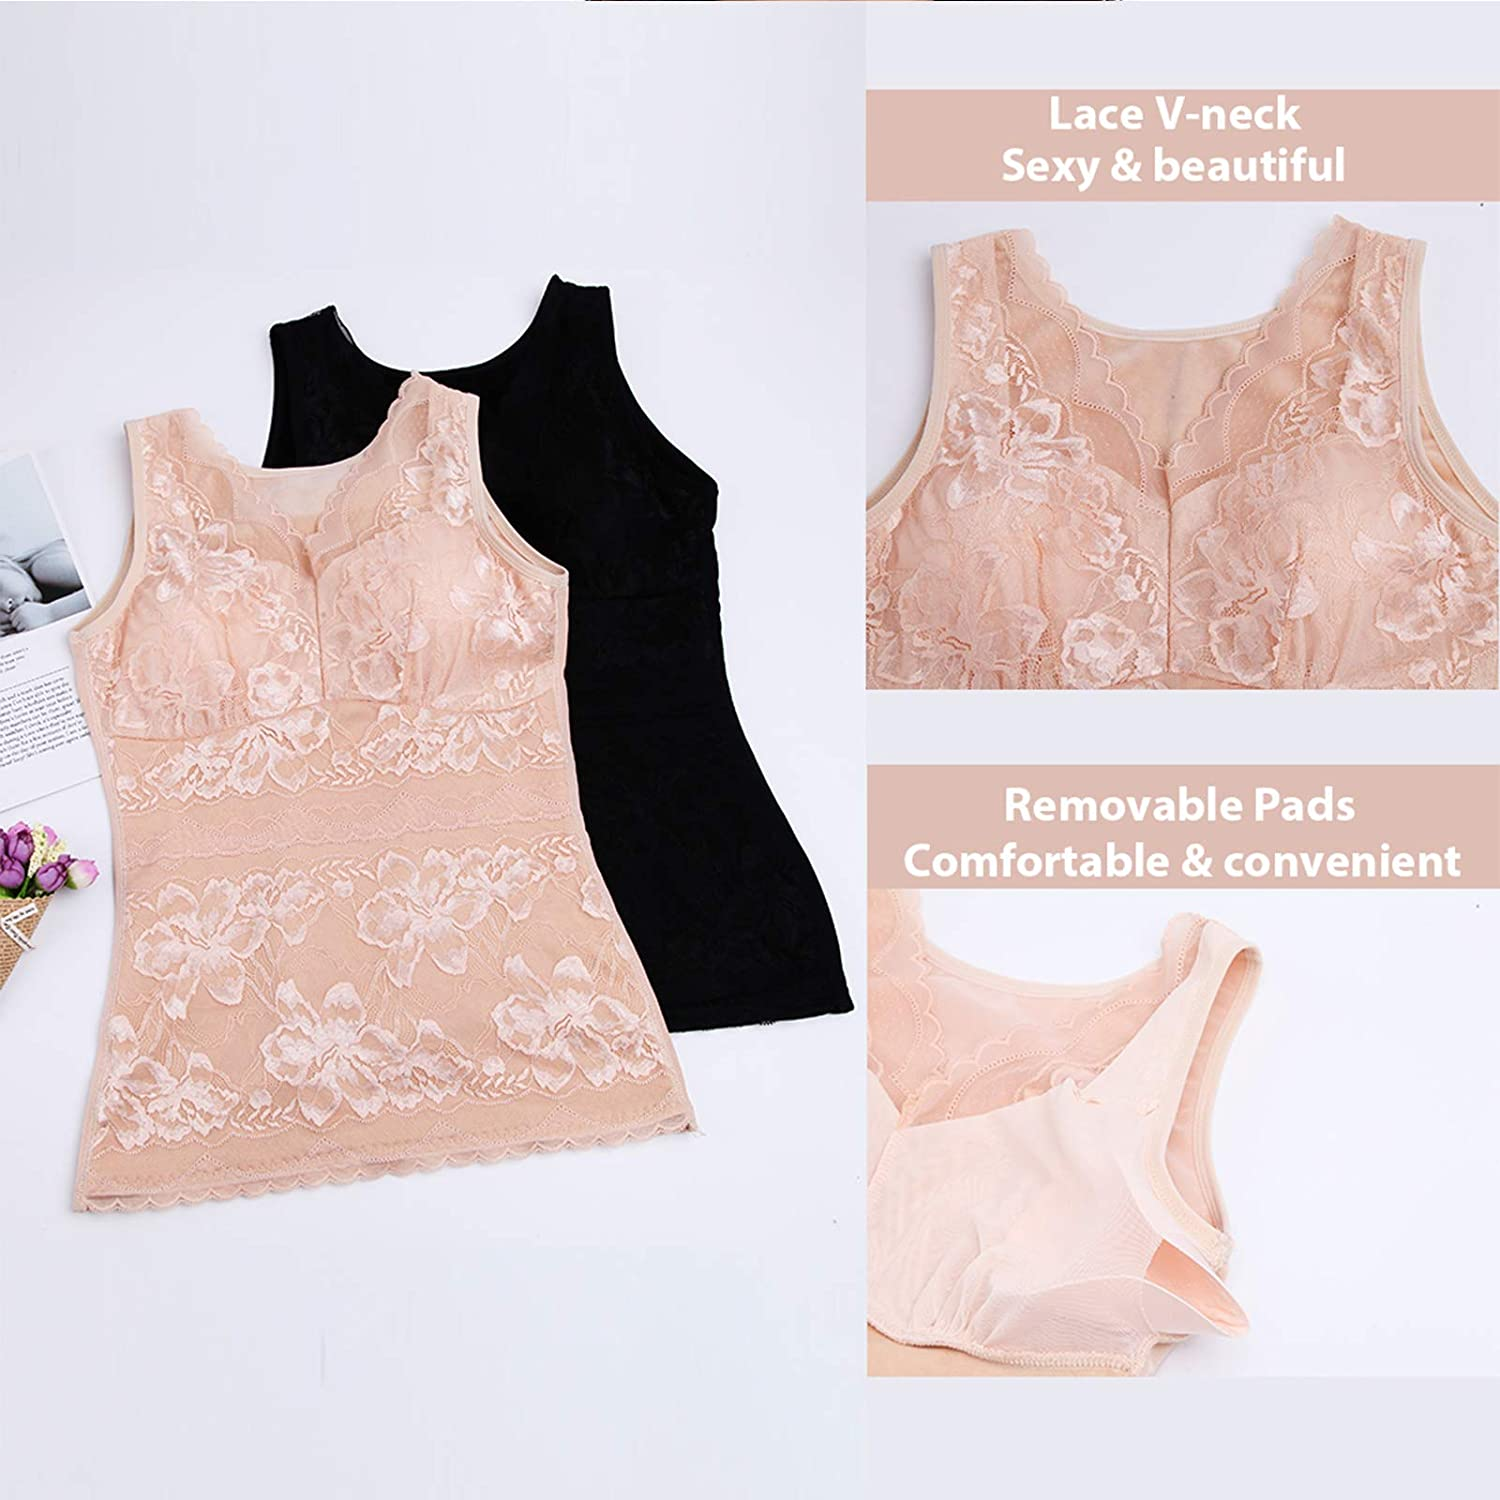 Womens Thermal Tank Top with Built in Bra Fleece Lined Thermal Underwear V Neck Lace Tank Top Winter